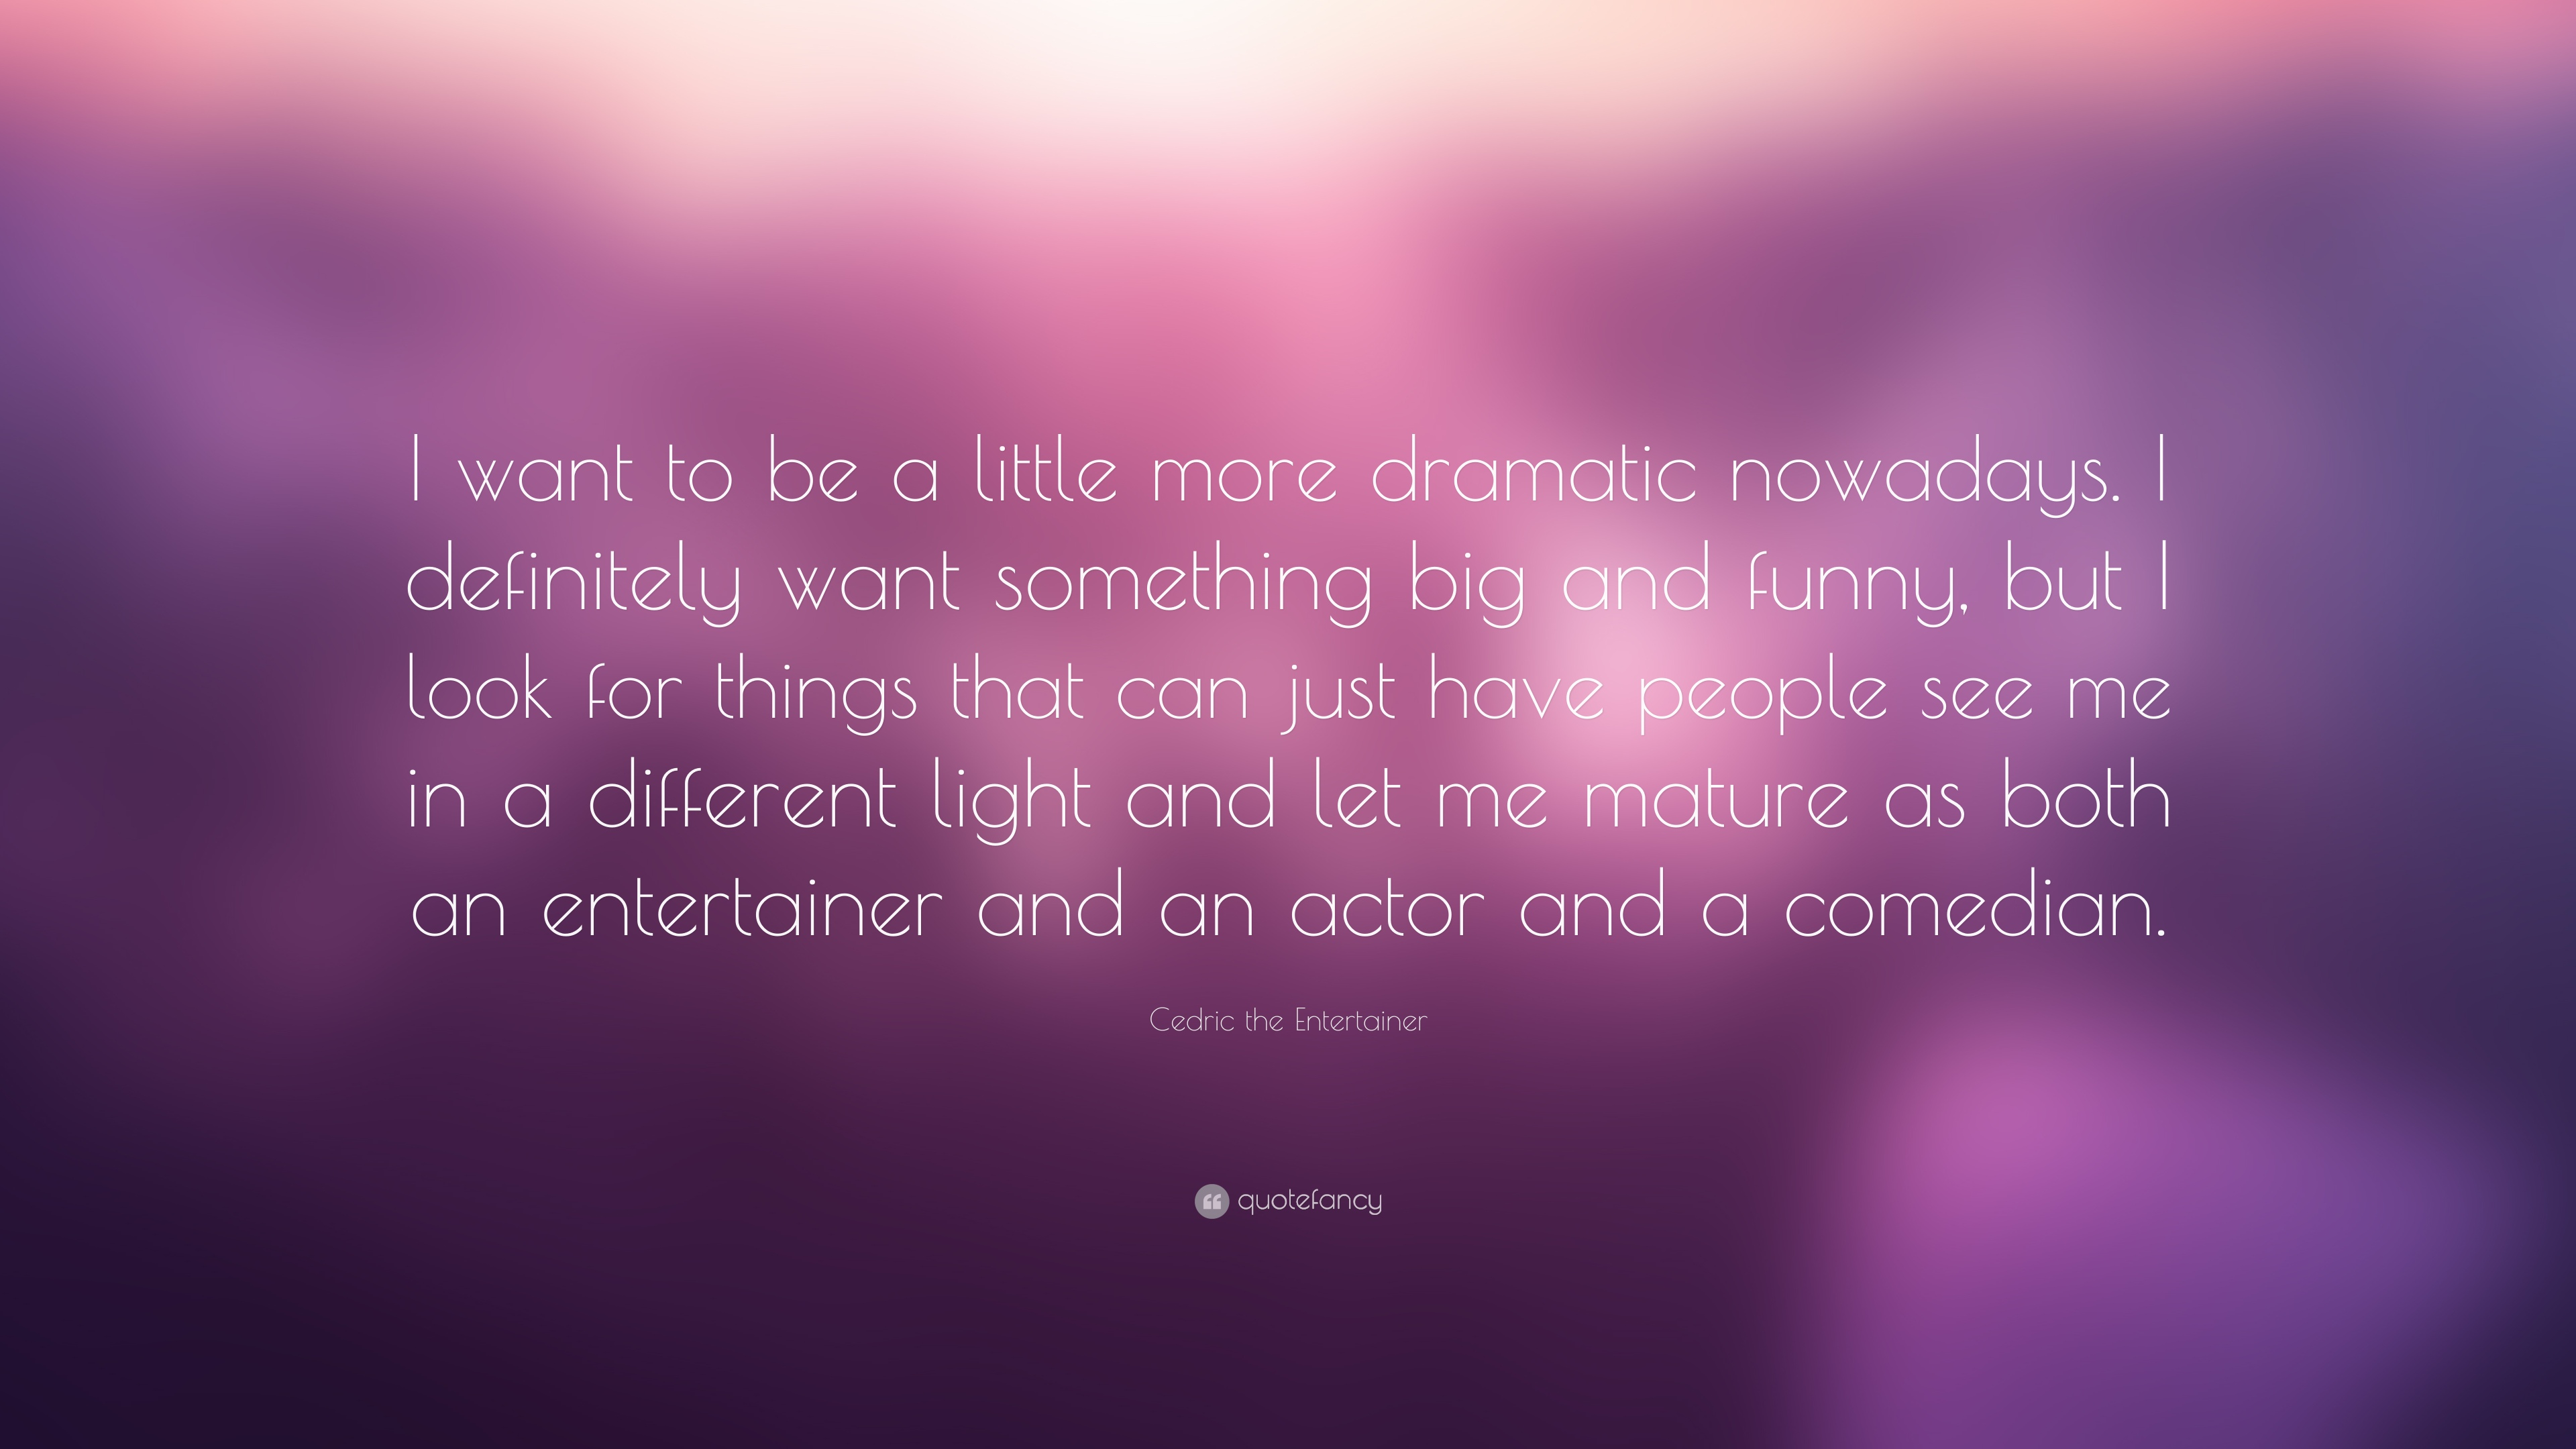 Cedric The Entertainer Quotes (8 Wallpapers)